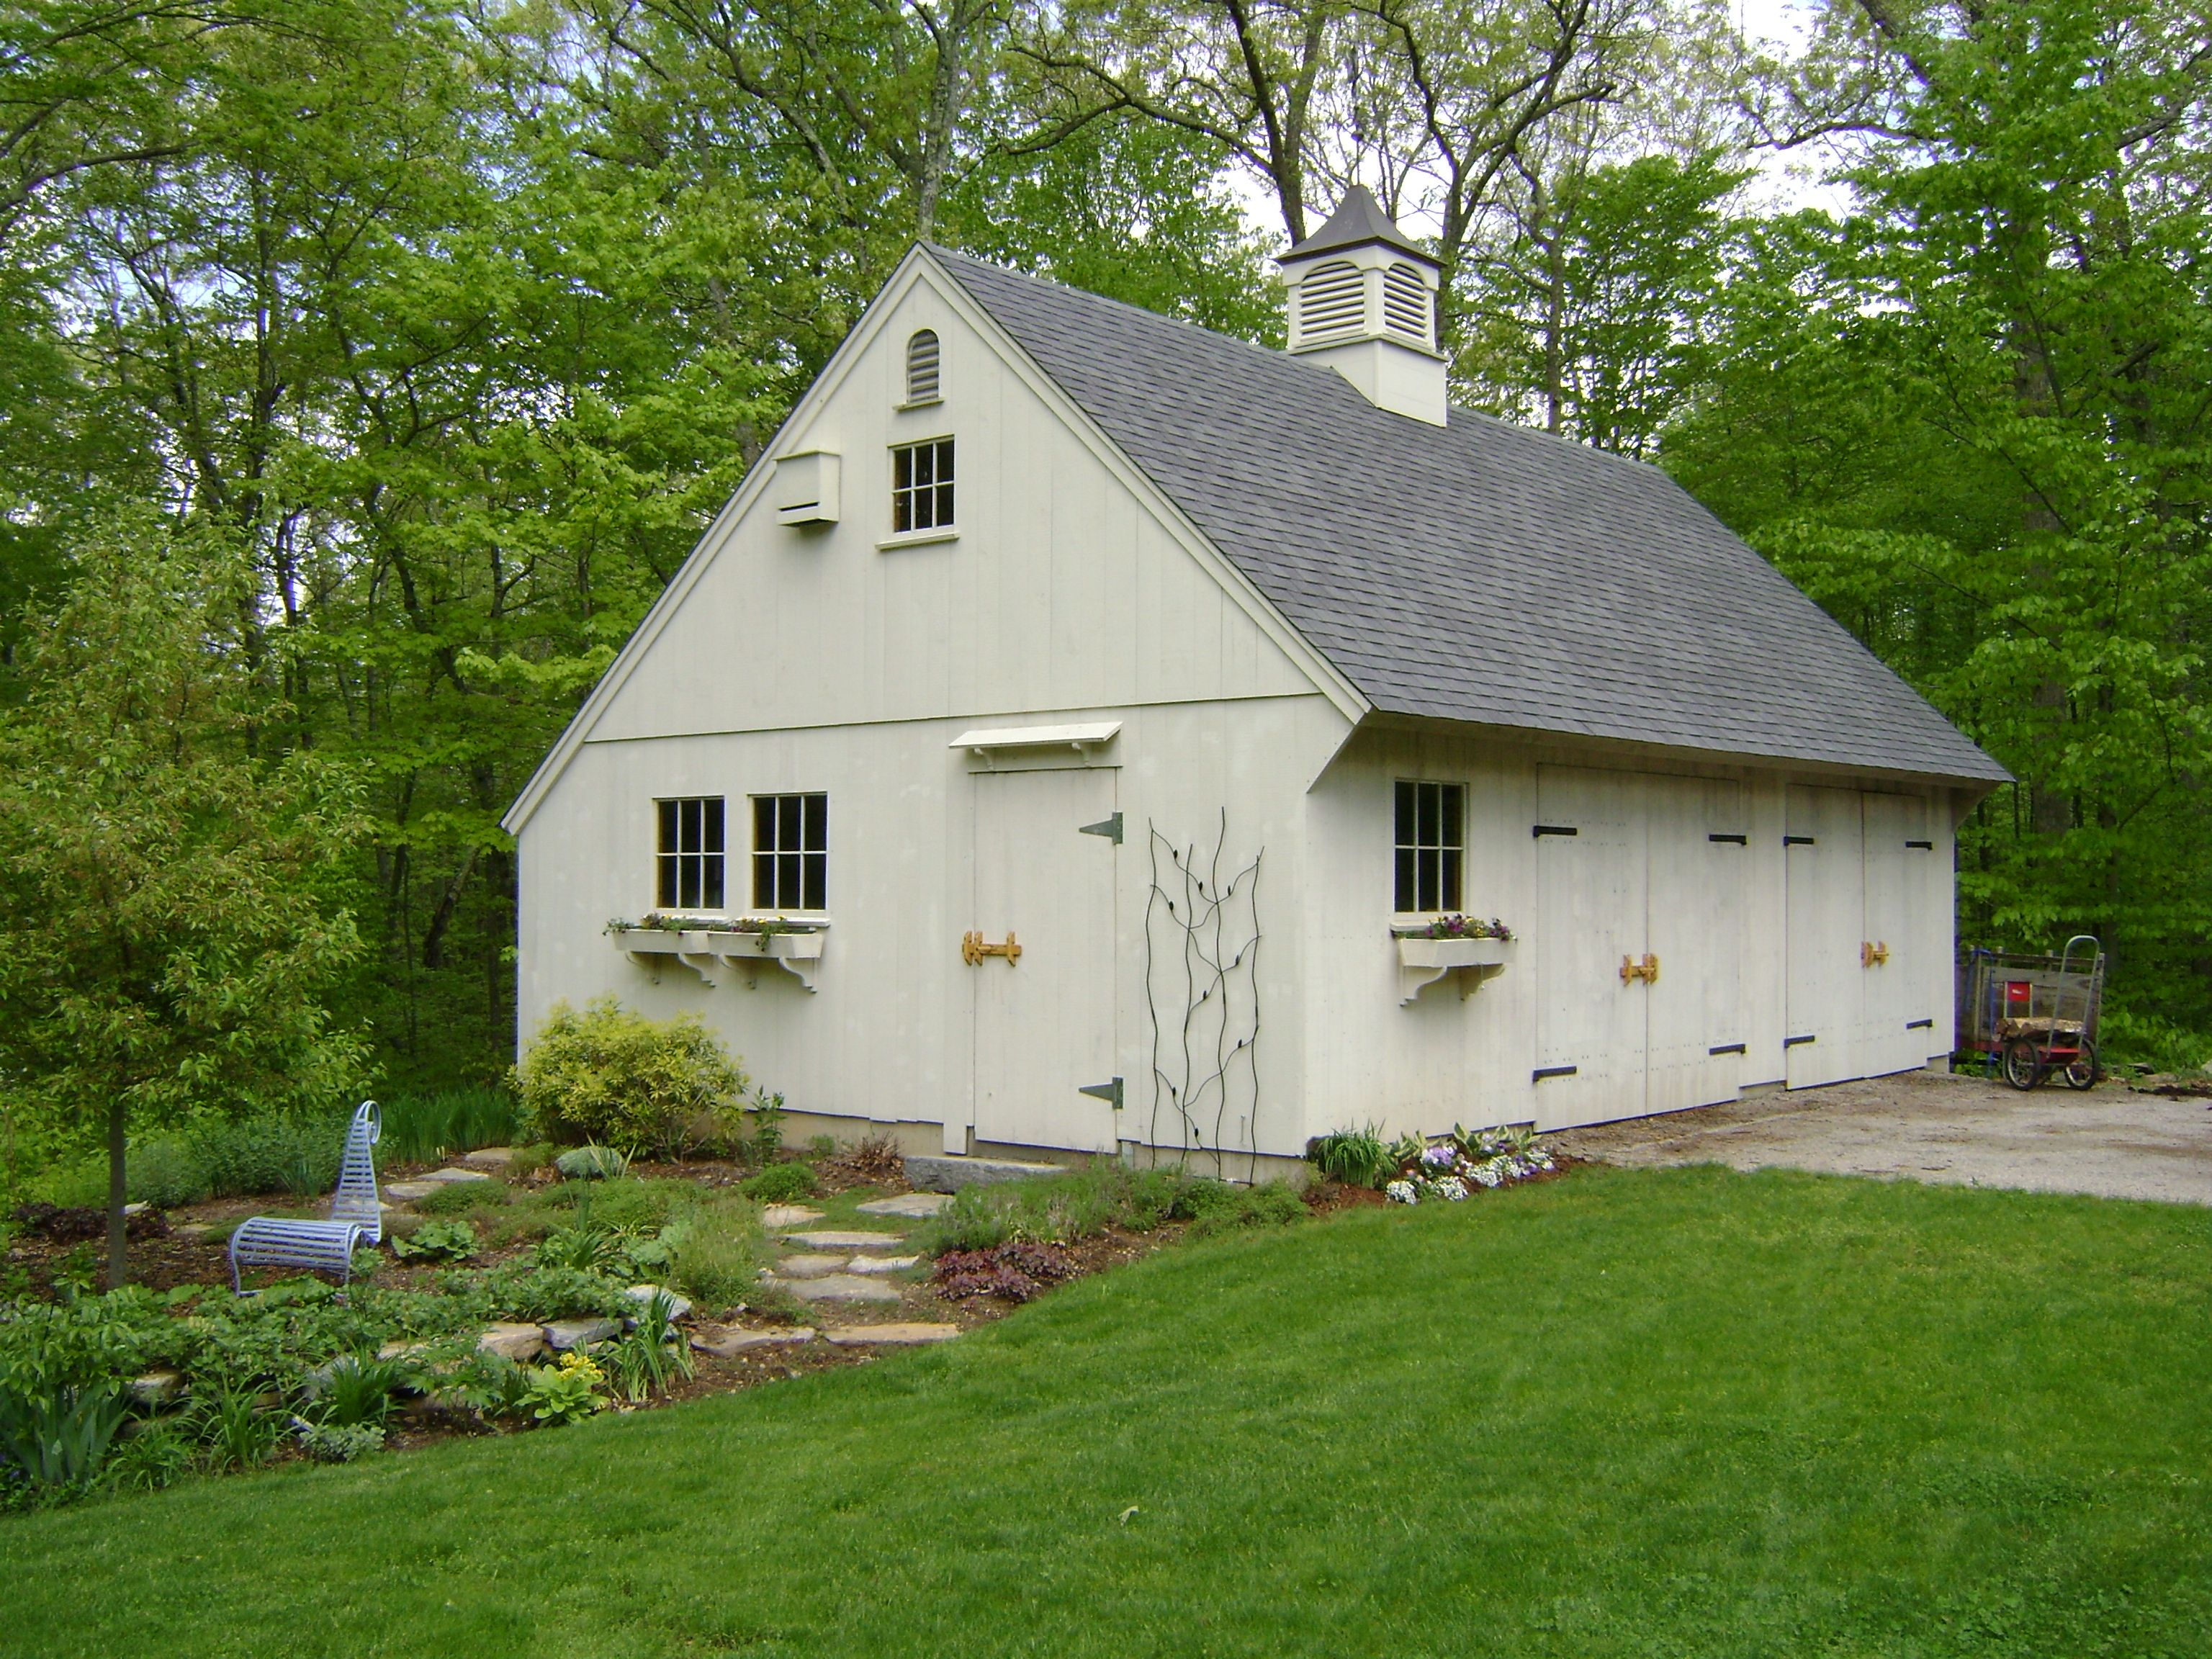 Our 22 X 30 Carriage House With 10 12 Roof Pitch Www Countrycarpenters Com New England Style Roof Architecture Shed